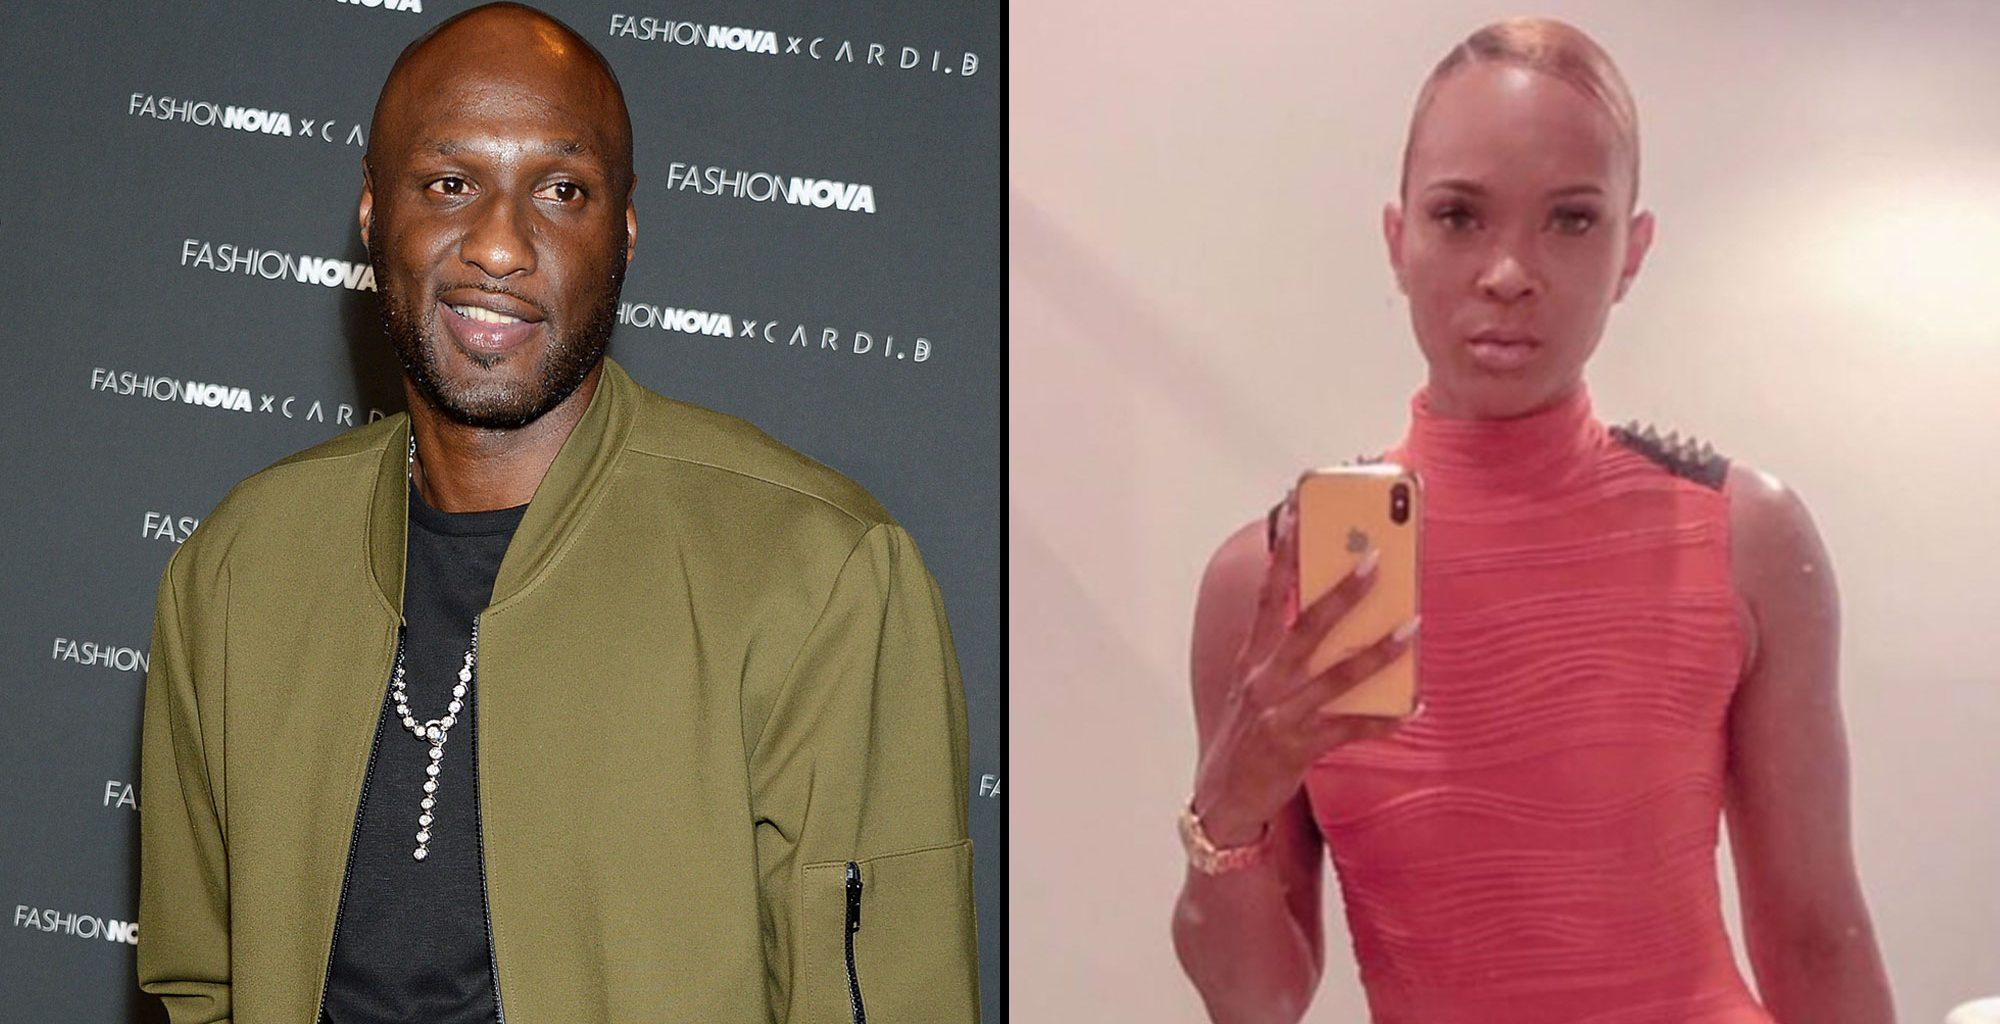 Lamar Odom Raves About 'Beautiful And Perfect' New Girlfriend Sabrina Parr - Reveals The Sweet Nickname He Gave Her!